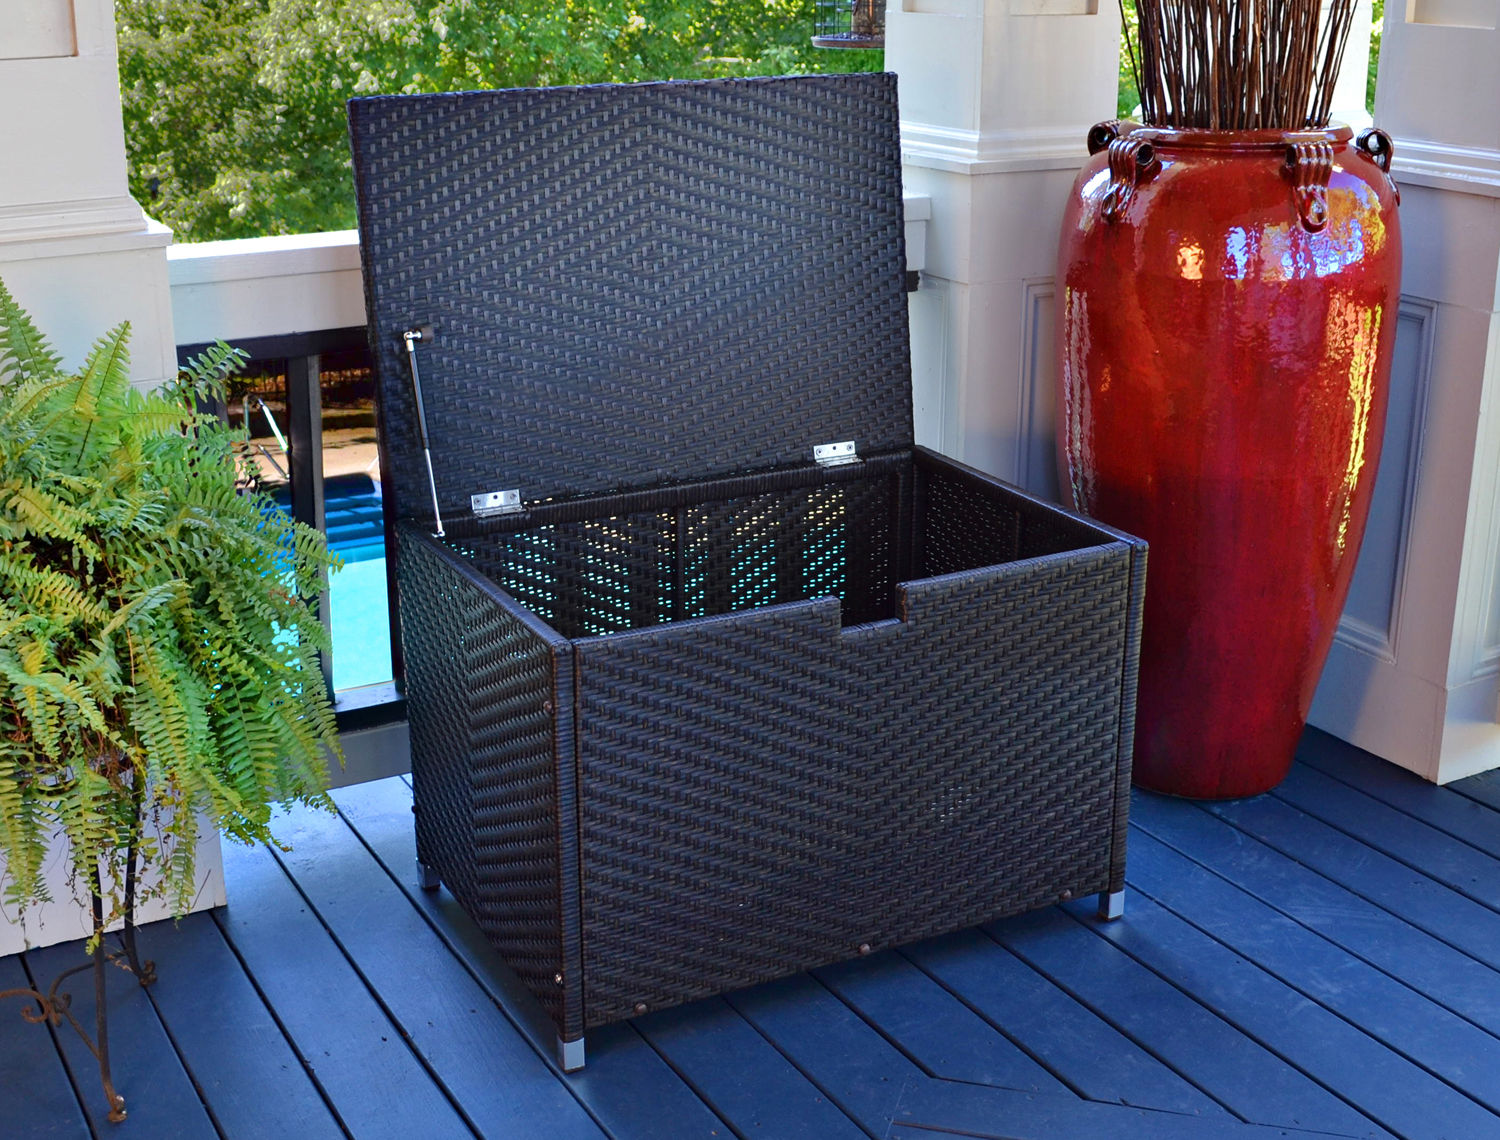 #202 - Medium Size Tortoise Resin Wicker Storage Box - For Indoor or Outdoor Use